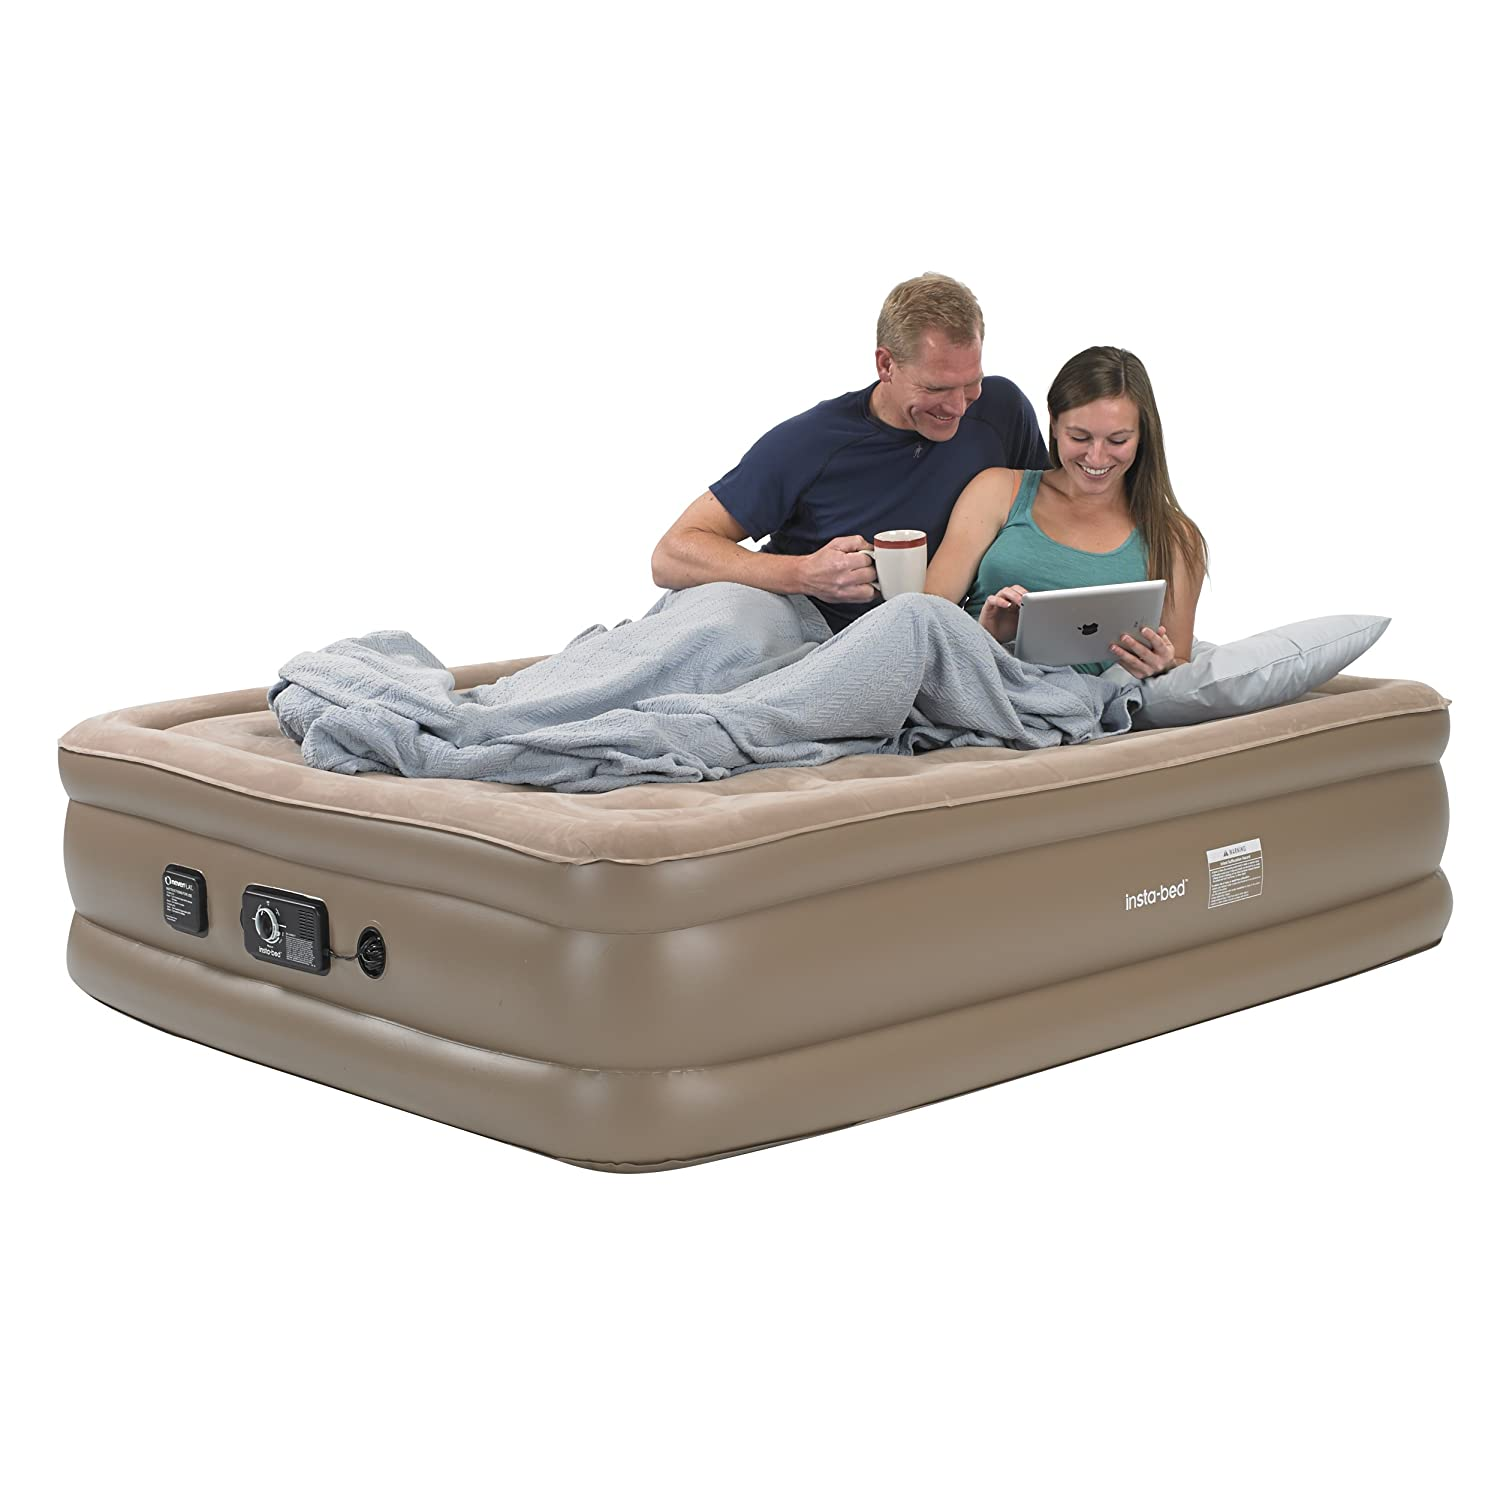 Insta-Bed Raised Air Mattress with Never Flat Pump - Queen